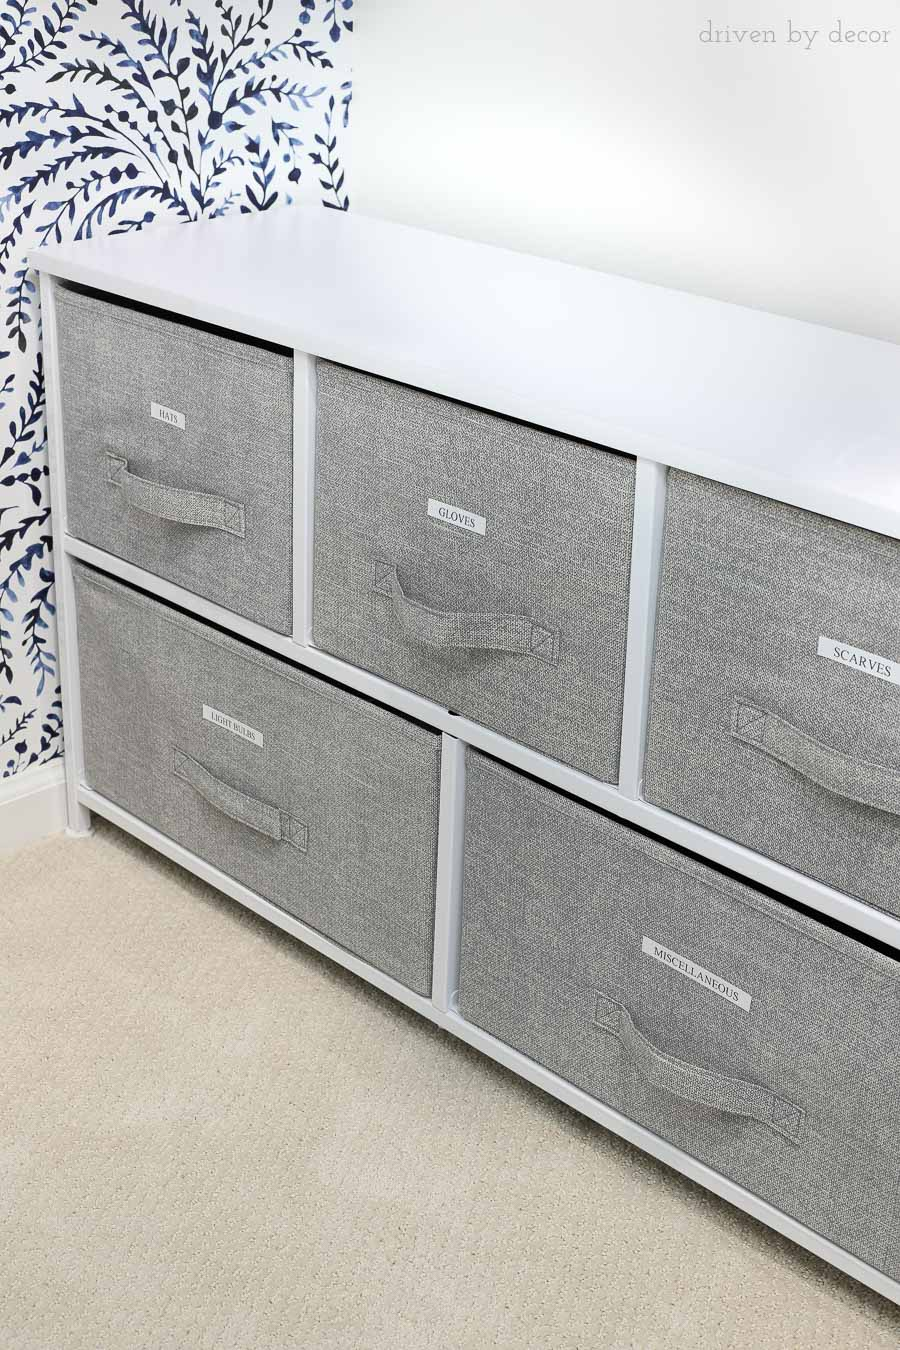 Totally getting these for my storage! Fabric dressers with pull-out drawers in different sizes - love!